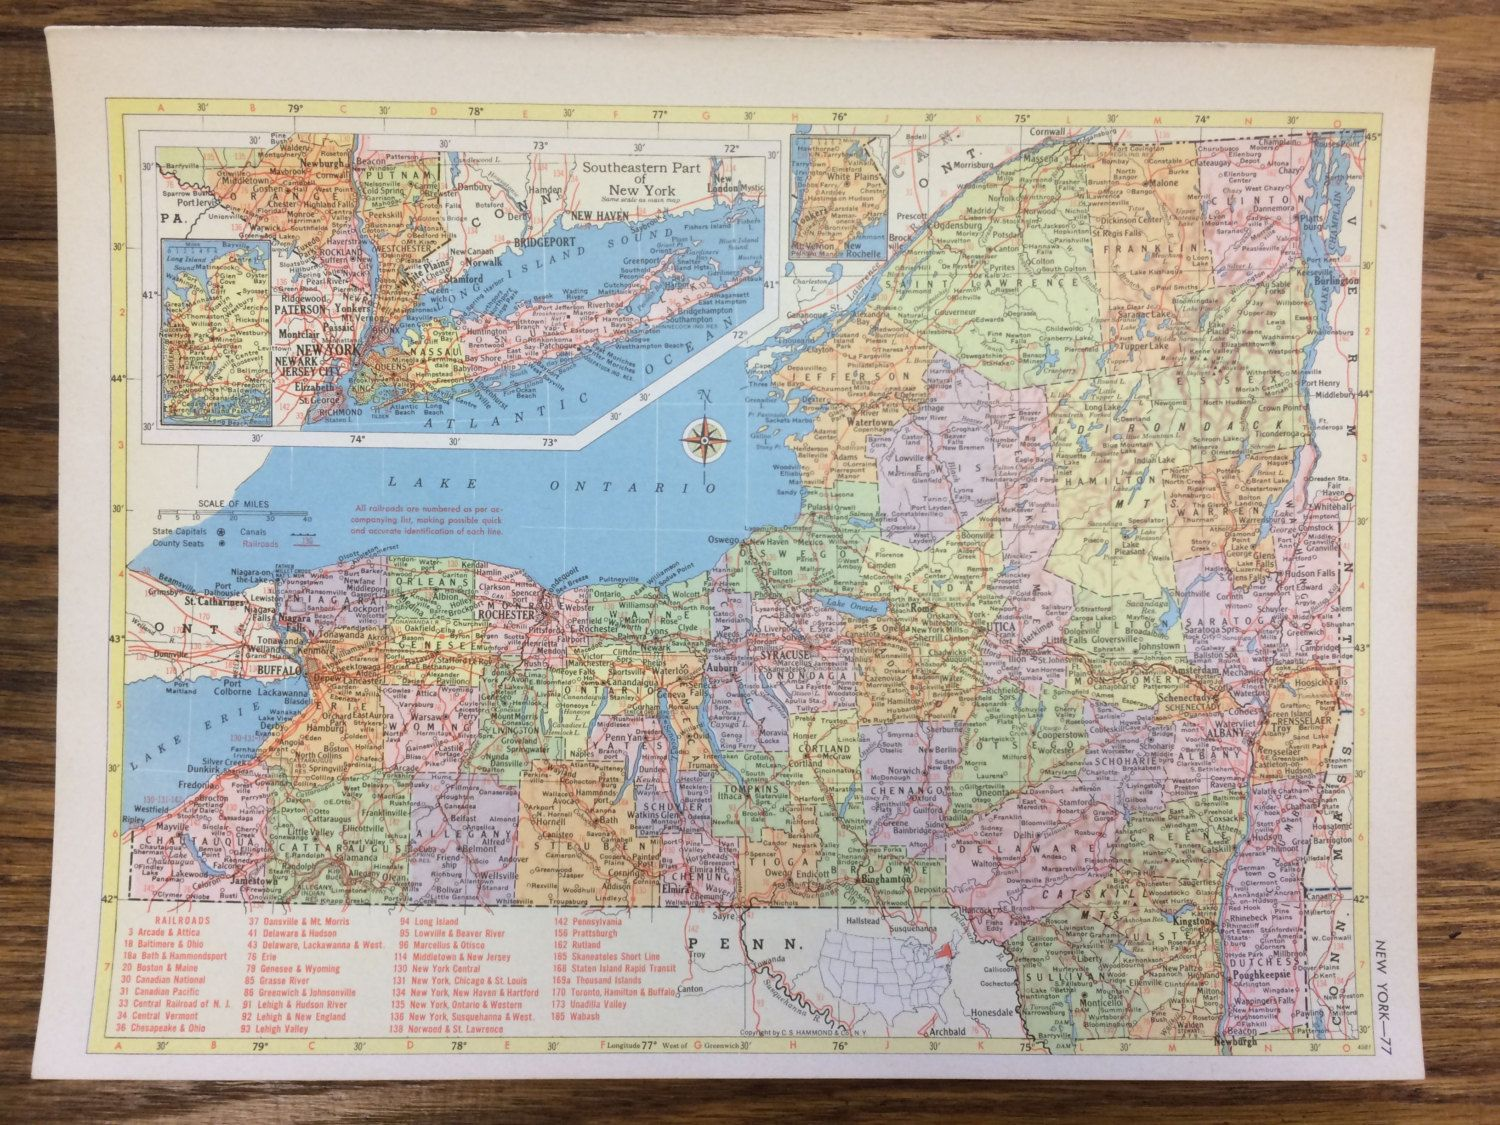 New york or north carolina large map 1955 hammonds new supreme new york or north carolina large map 1955 hammonds new supreme world atlas vintage north carolina supreme and garden city ny gumiabroncs Image collections